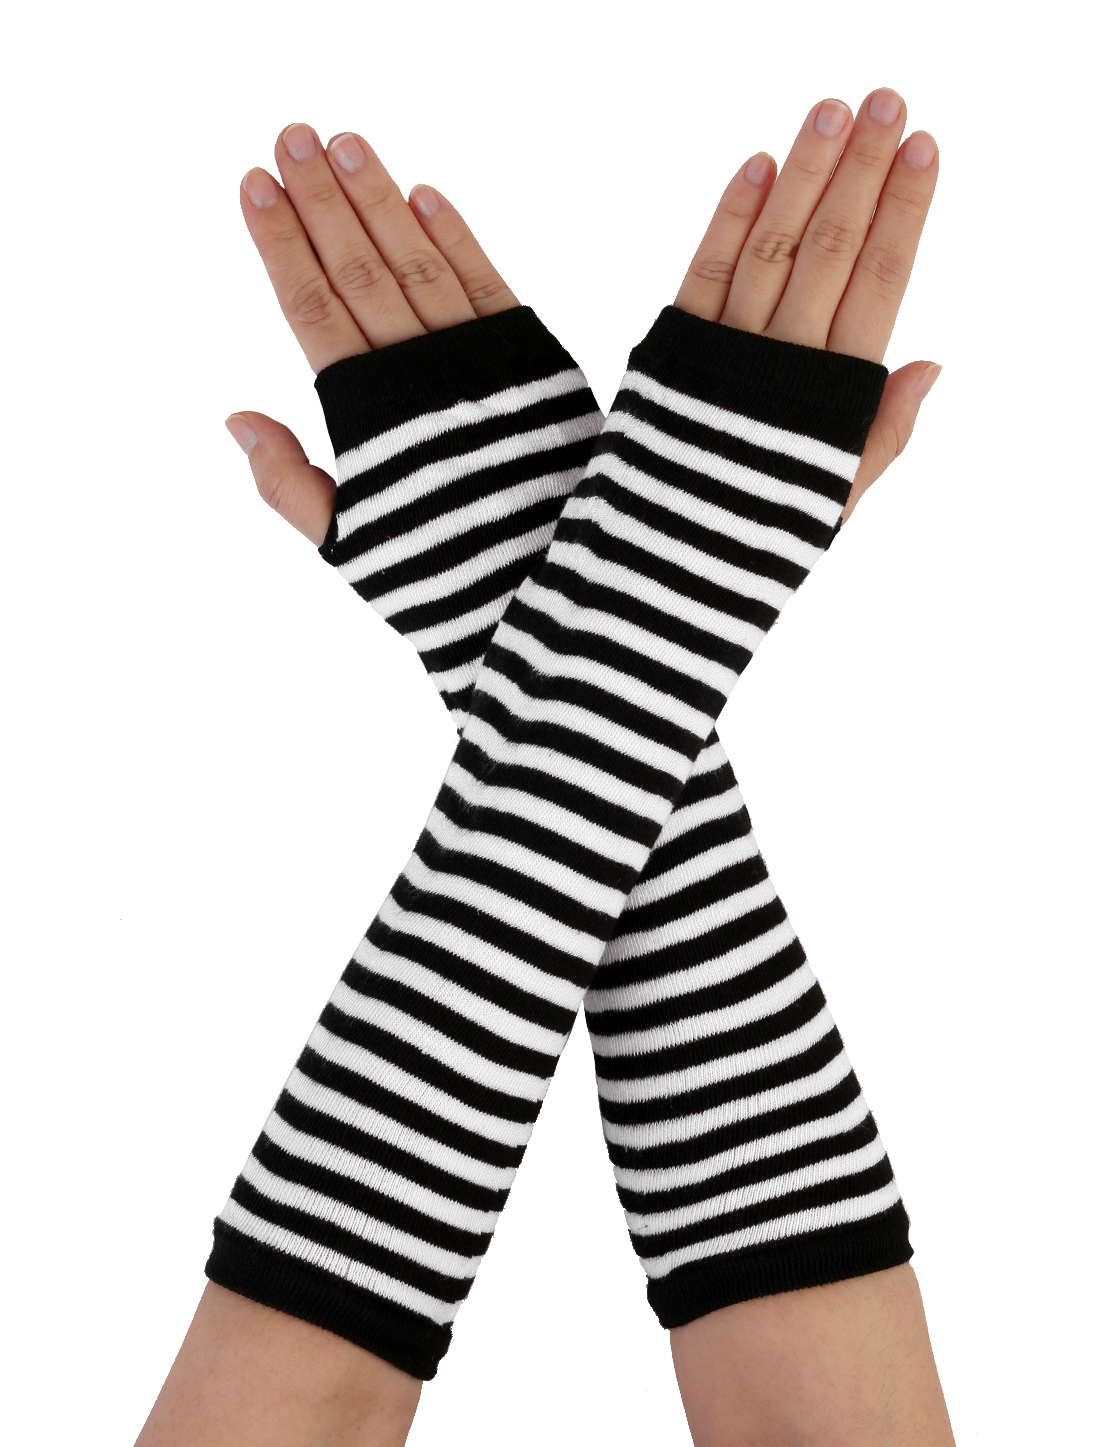 Women Fingerless Stripes Prints Fabric Arm Long Gloves Warmers White Black Pair